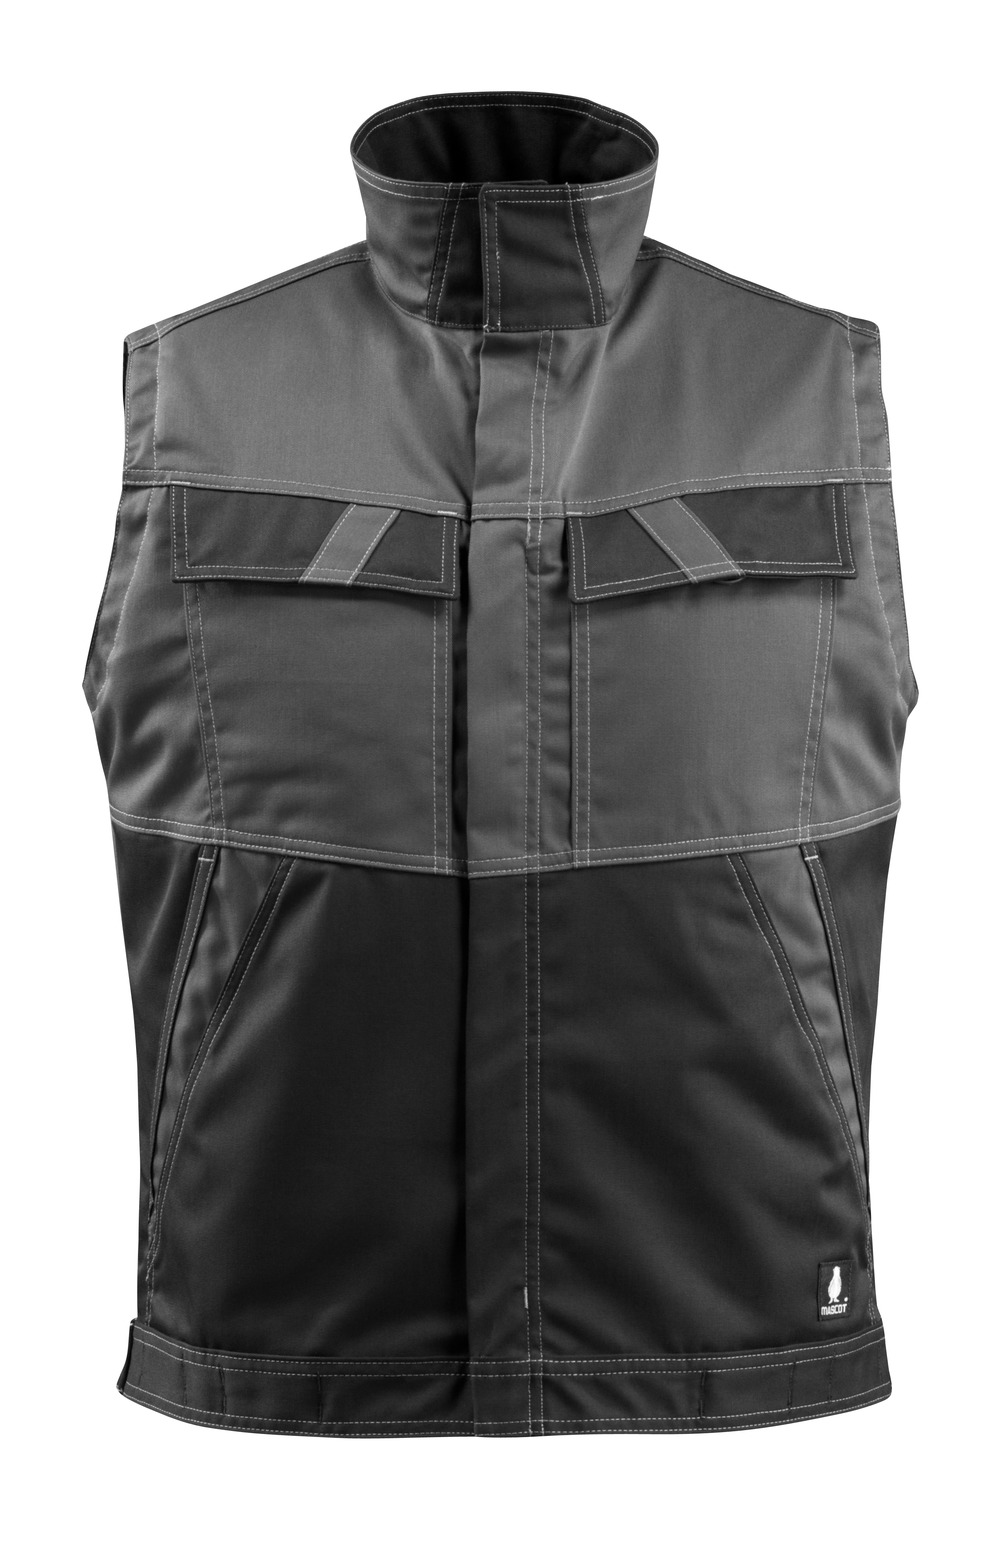 15754-330-1809 Gilet - antracite scuro/nero